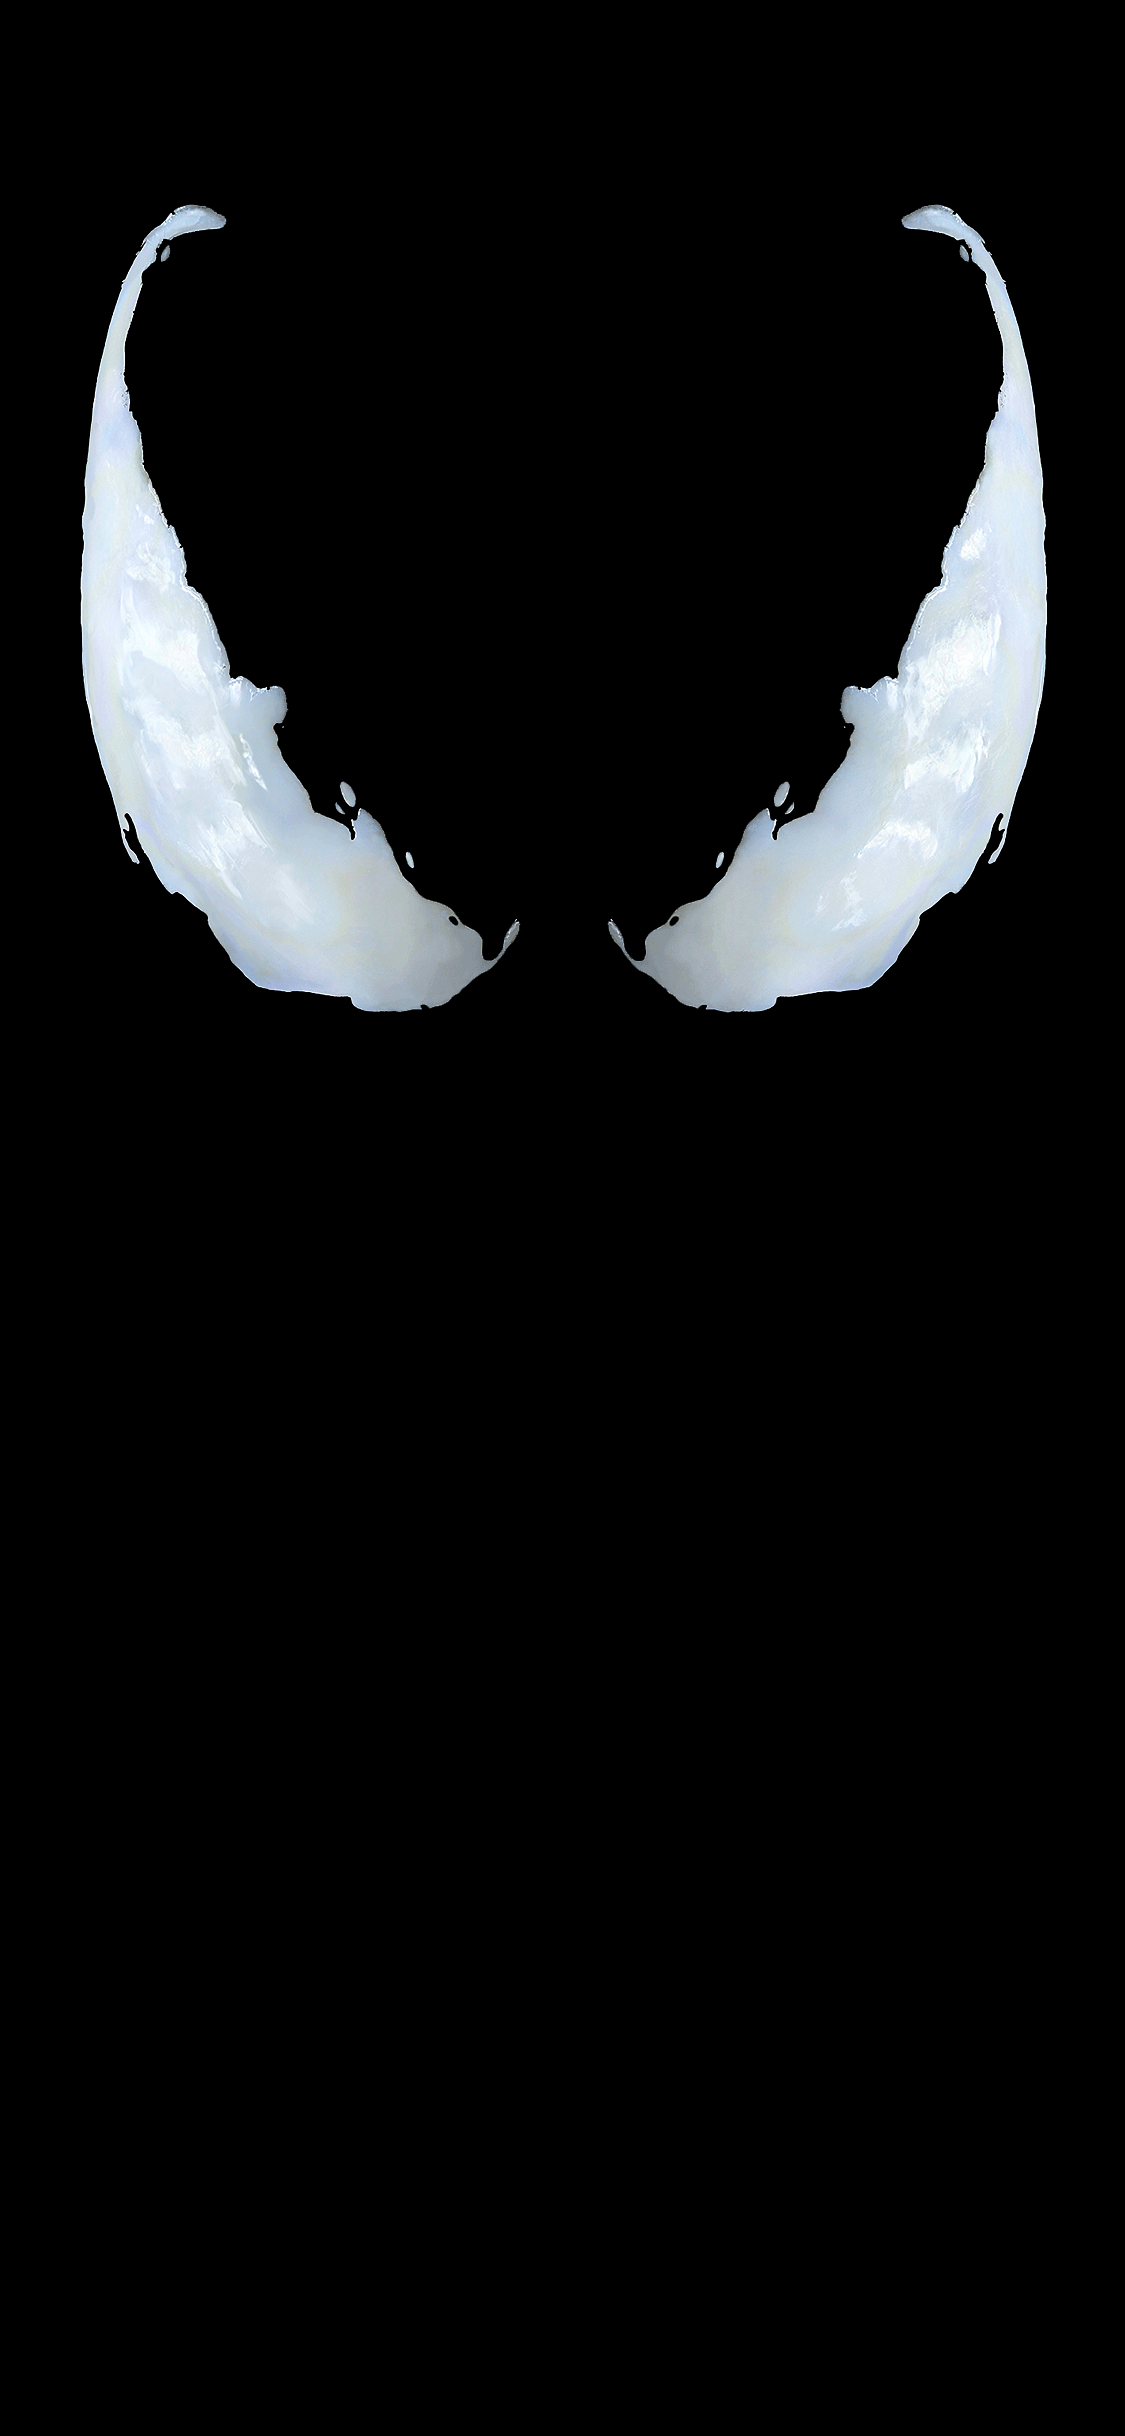 Venom Wallpaper For Iphone X 8 7 6 Free Download On 3wallpapers